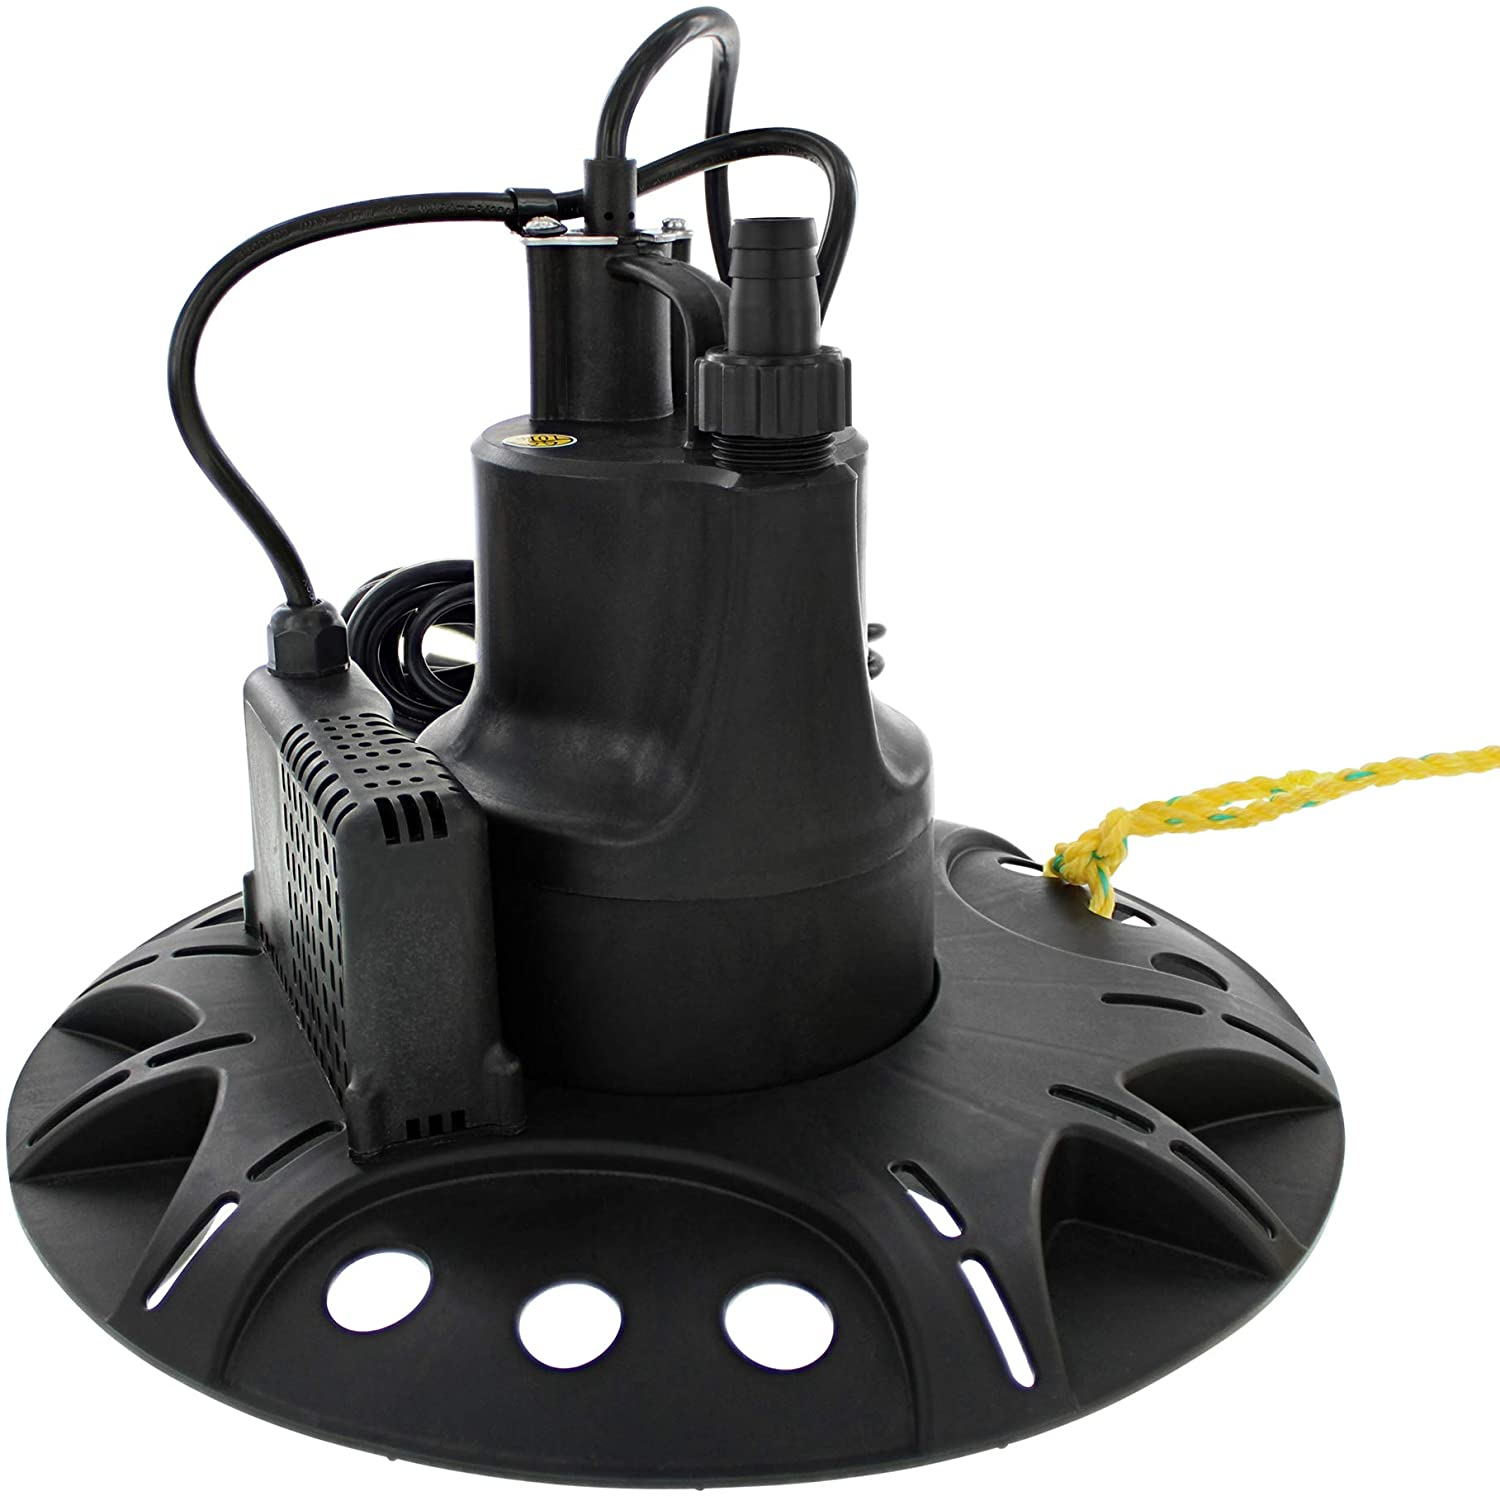 Mastercraft 1/6 HP Pool Cover Pump